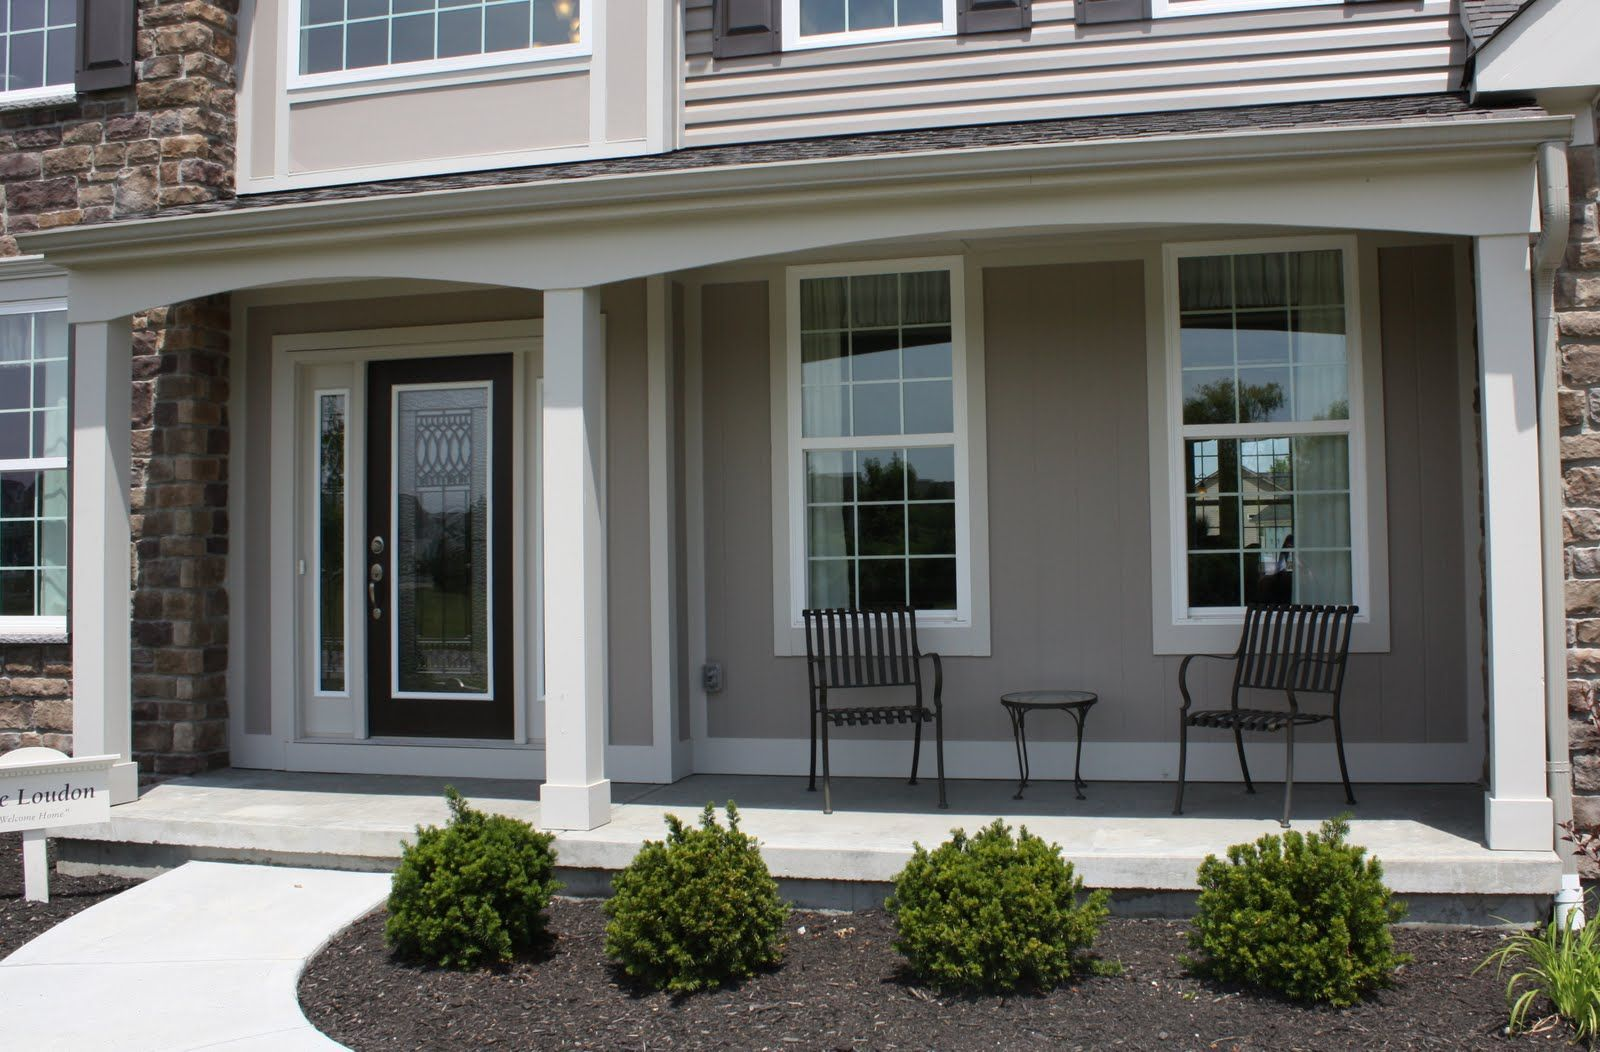 Home Inspiration Awesome Front Porch Ideas For Colonial Homes 27 Best Images On From Front Small Front Porches Designs Front Porch Design Colonial Front Door